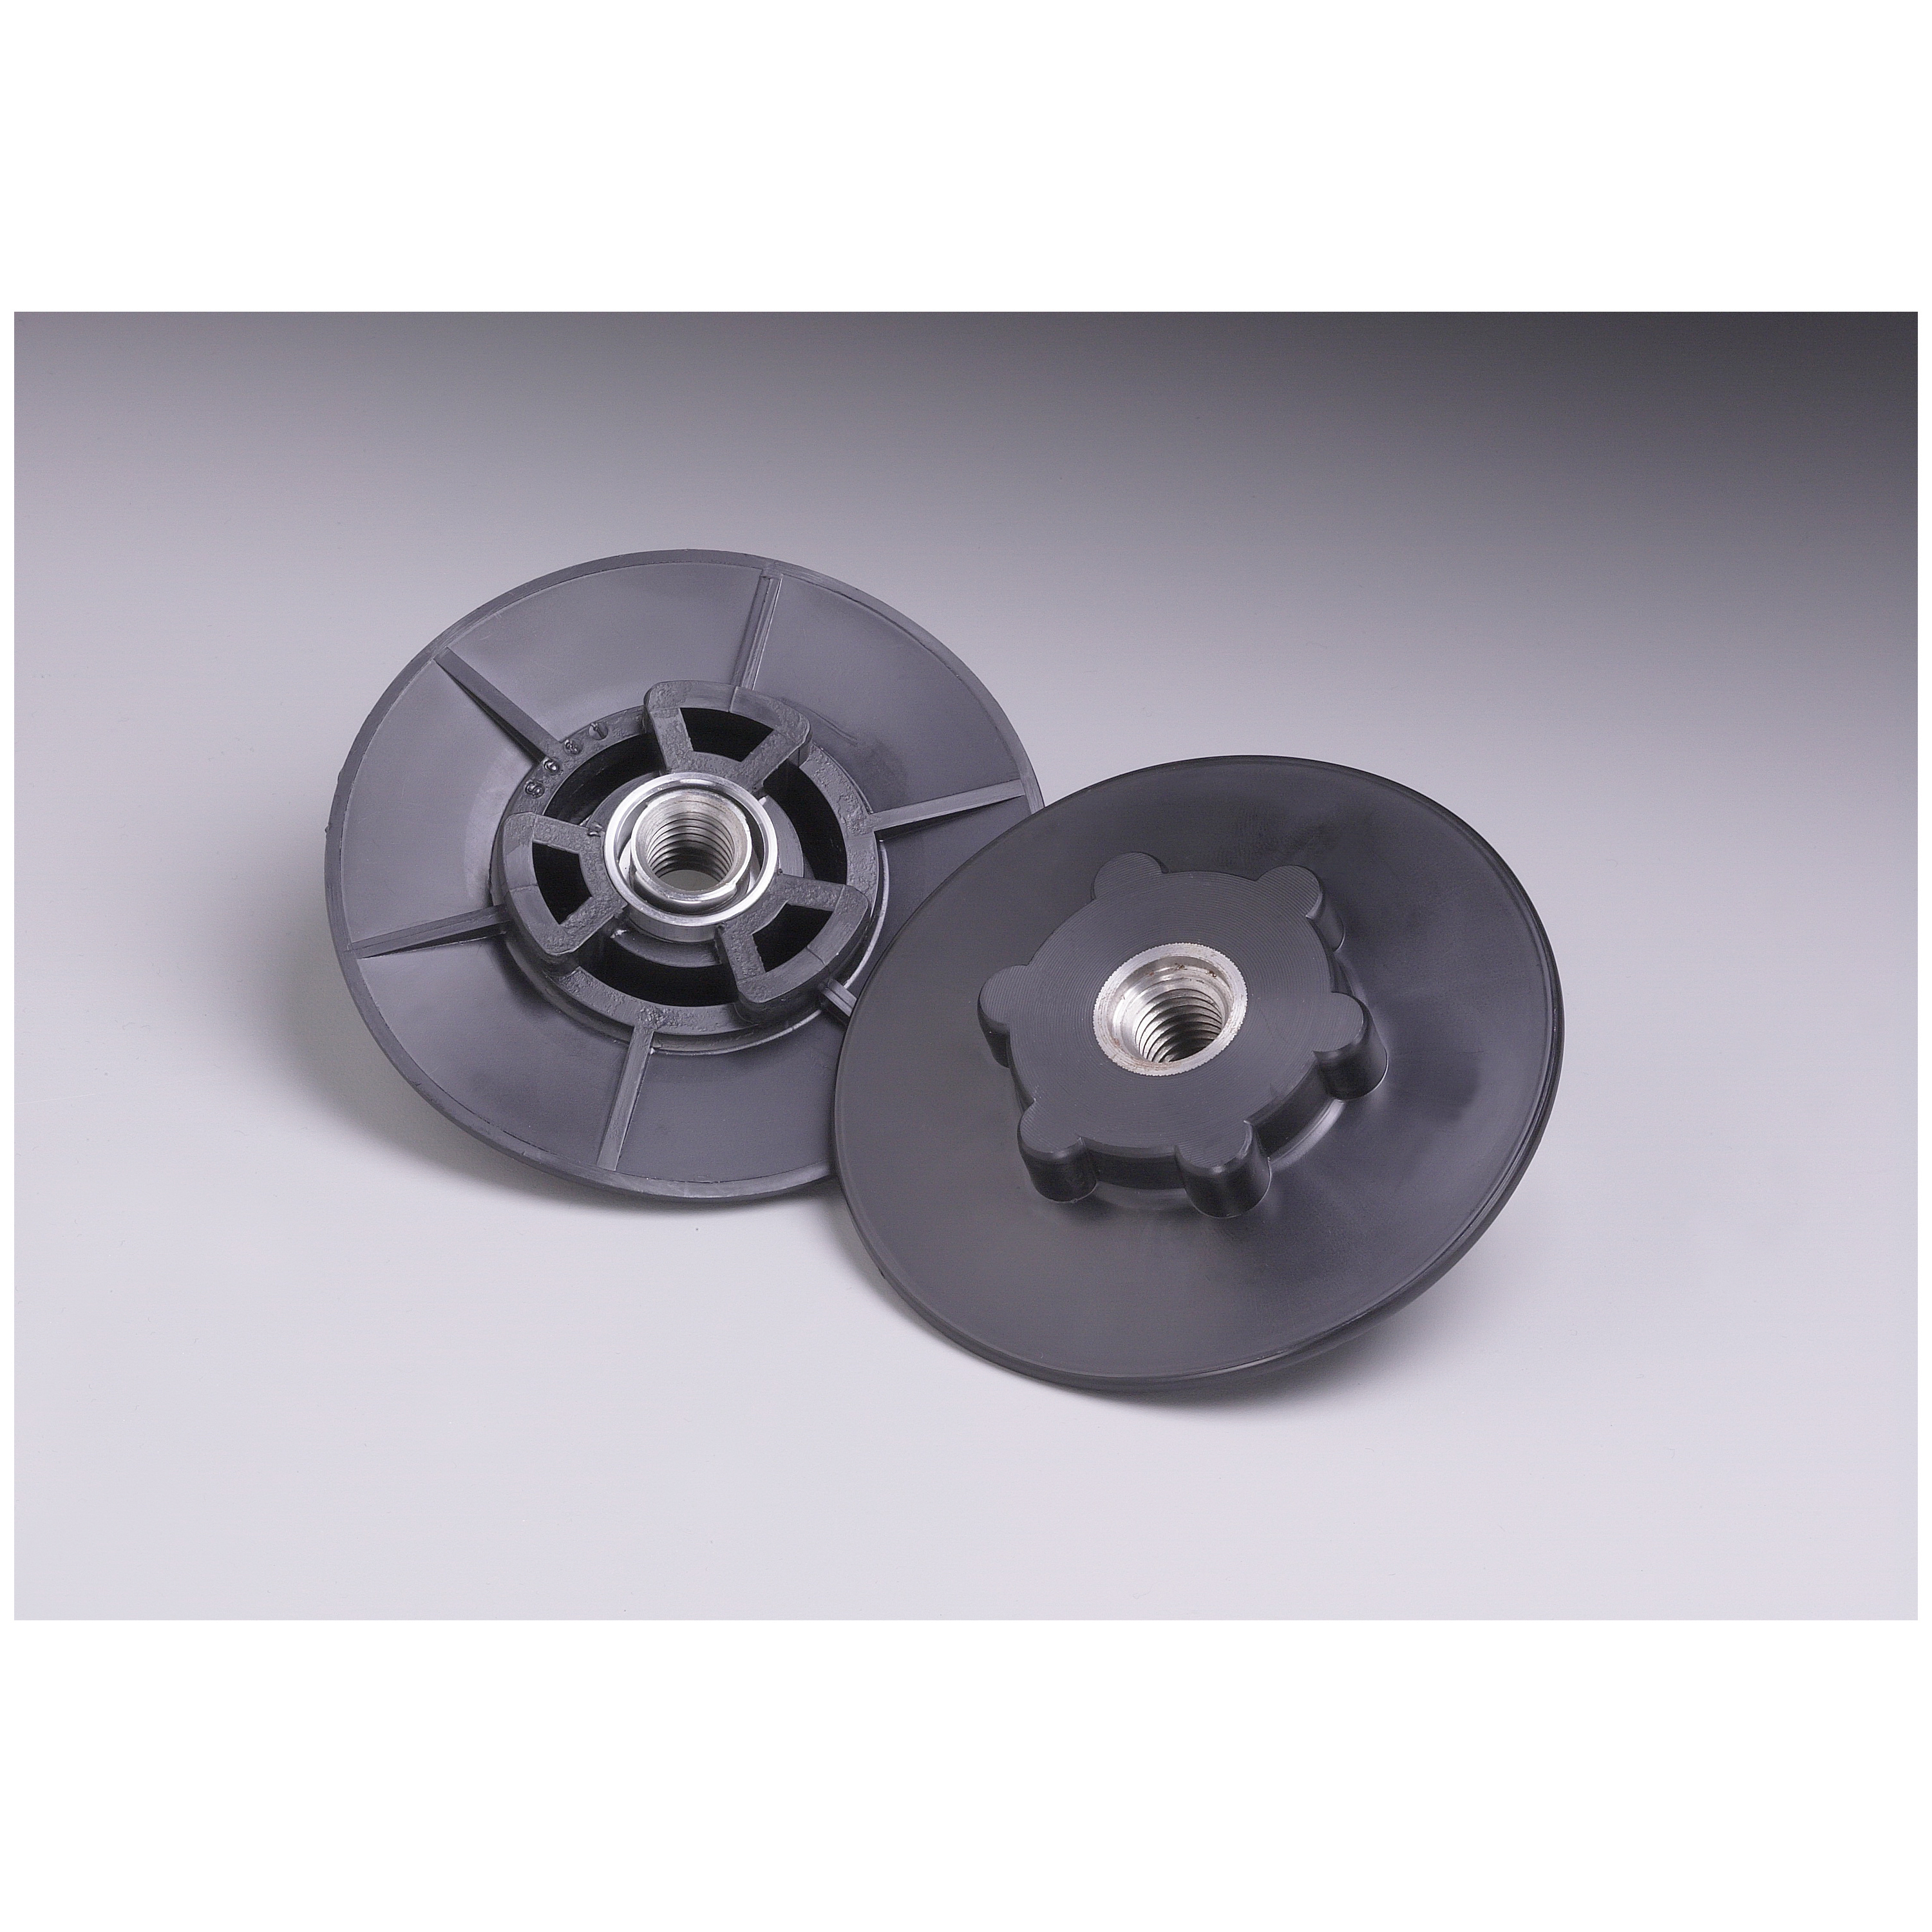 3M™ 051144-11823 Type GL Quick-Attachment Disc Pad Hub, 4-1/2 in W/Dia, For Use With 7 in Face Plate